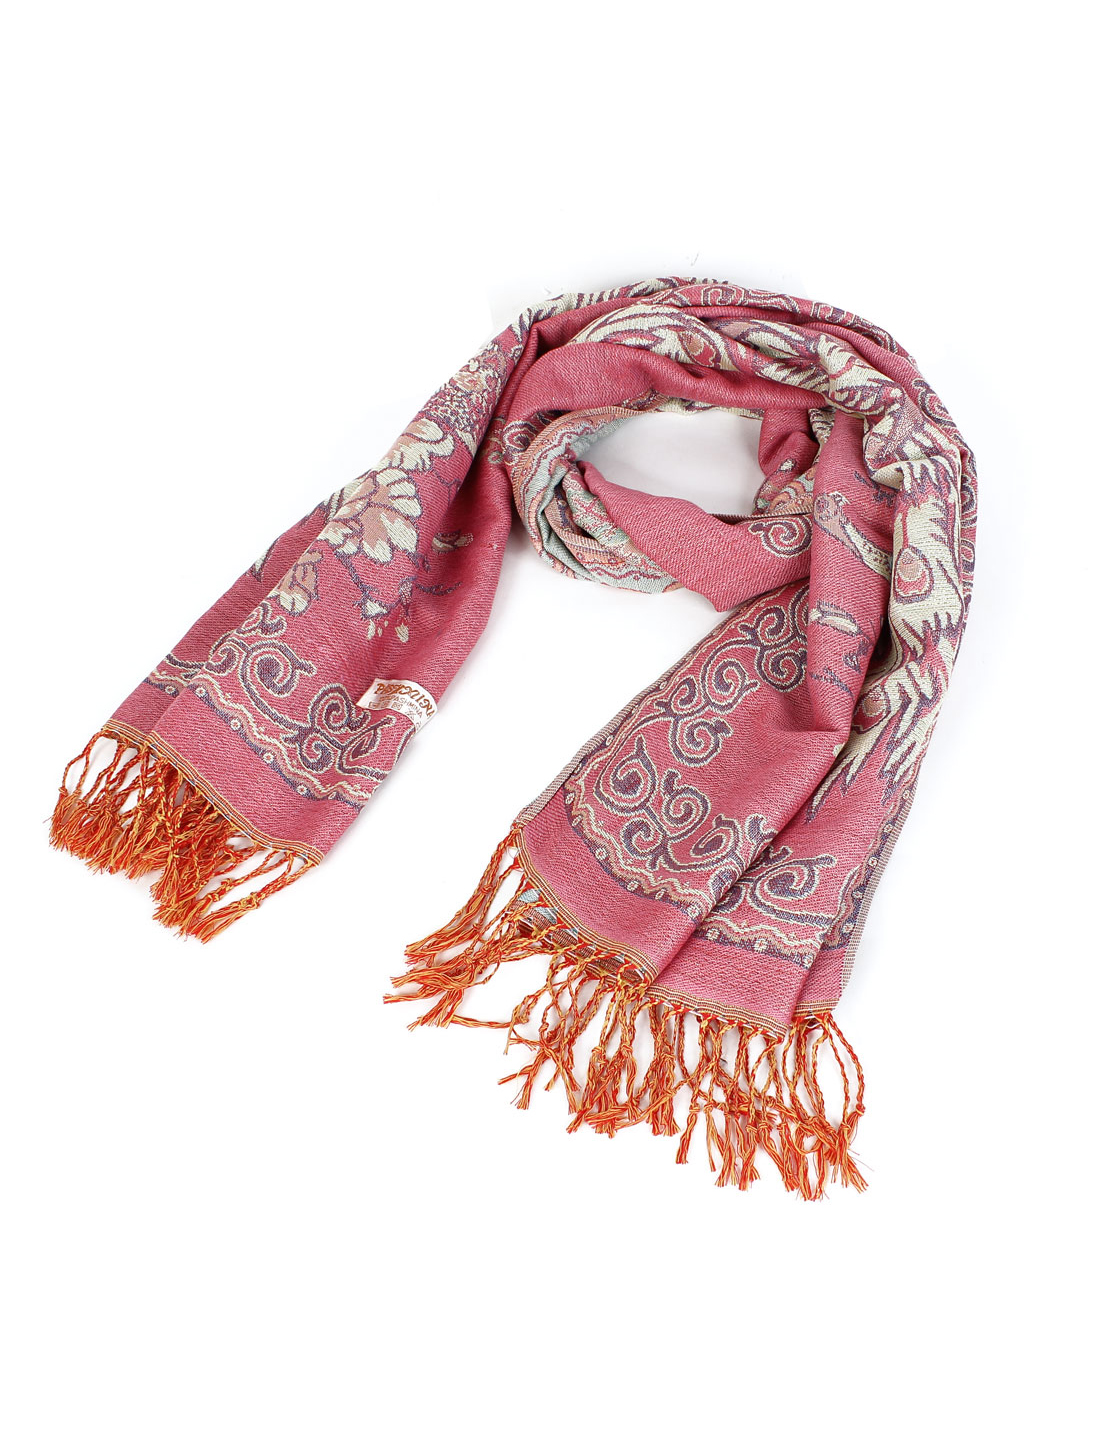 Lady Peacock Pattern Warm Tassel Shawl Scarf Neck Wrap Pink